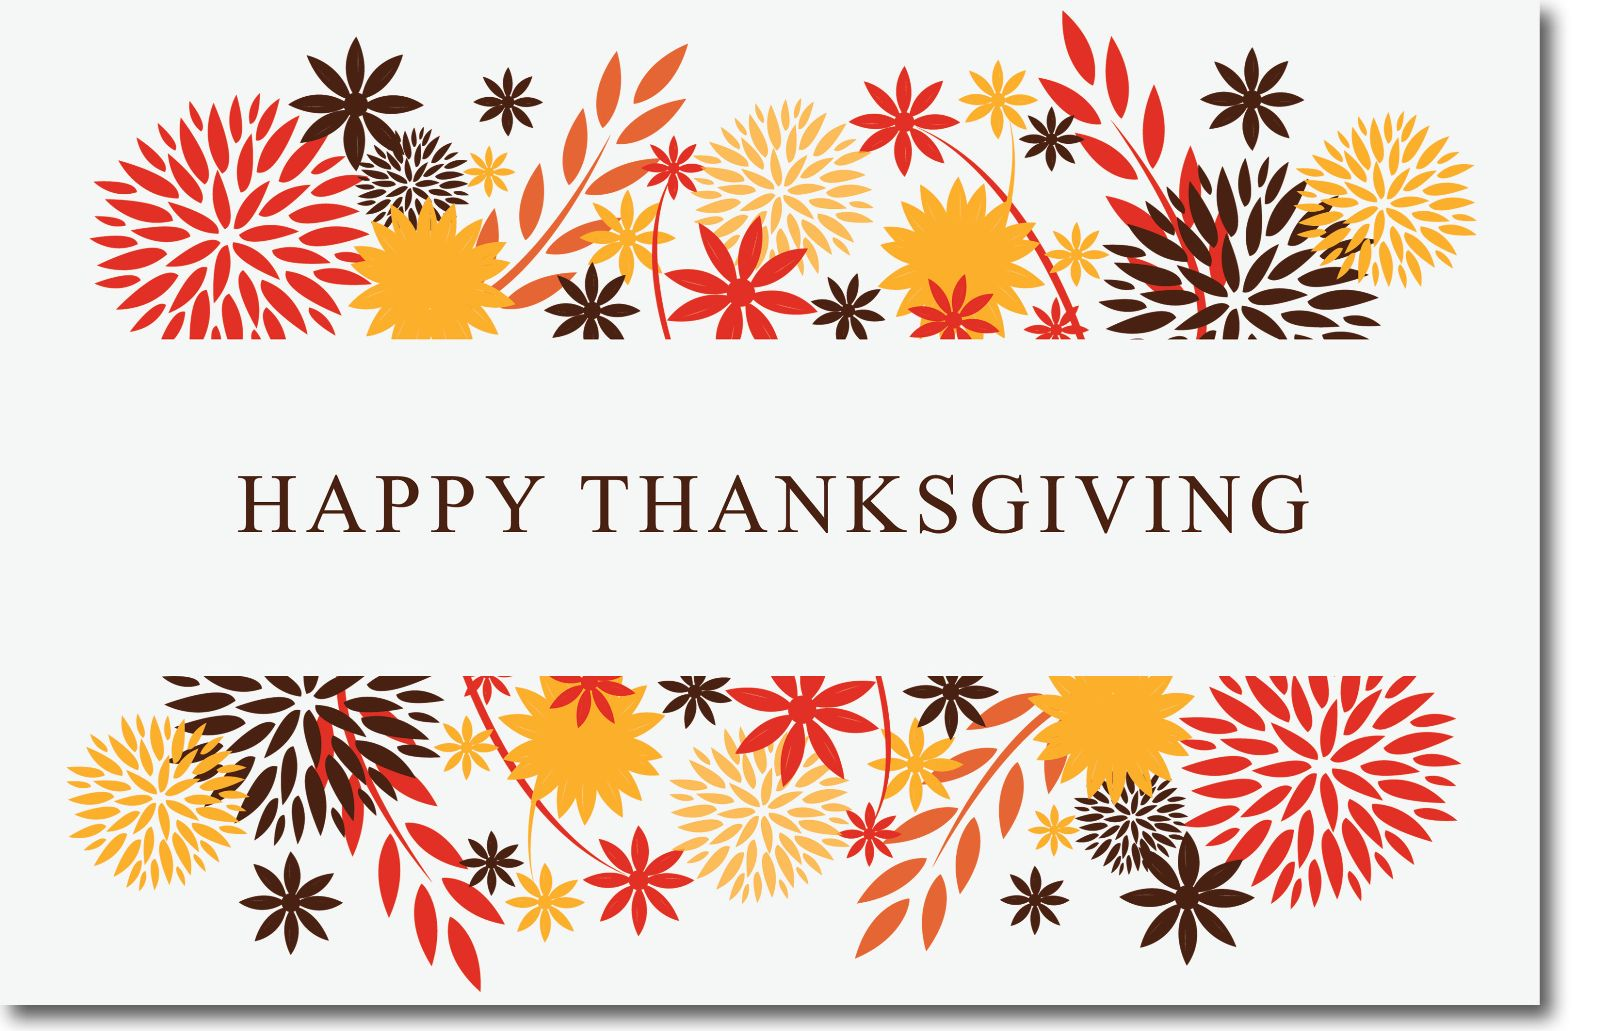 Happy thanksgiving images pictures cards 2016 for friends family thanksgiving images 2016 kristyandbryce Images